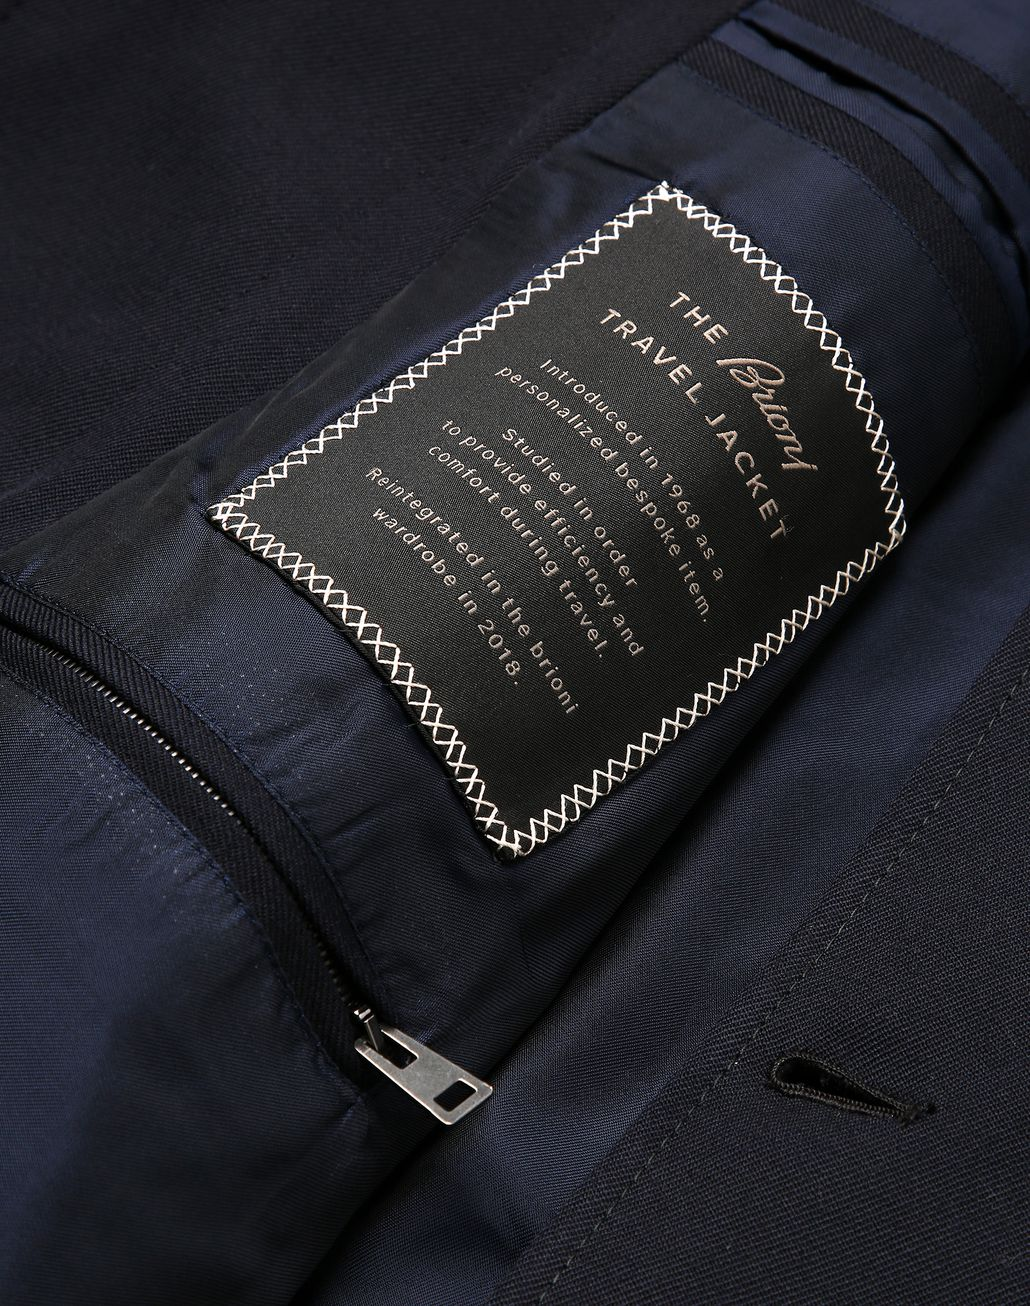 BRIONI Veste New Travel bleu marine Formal Jacket Homme b